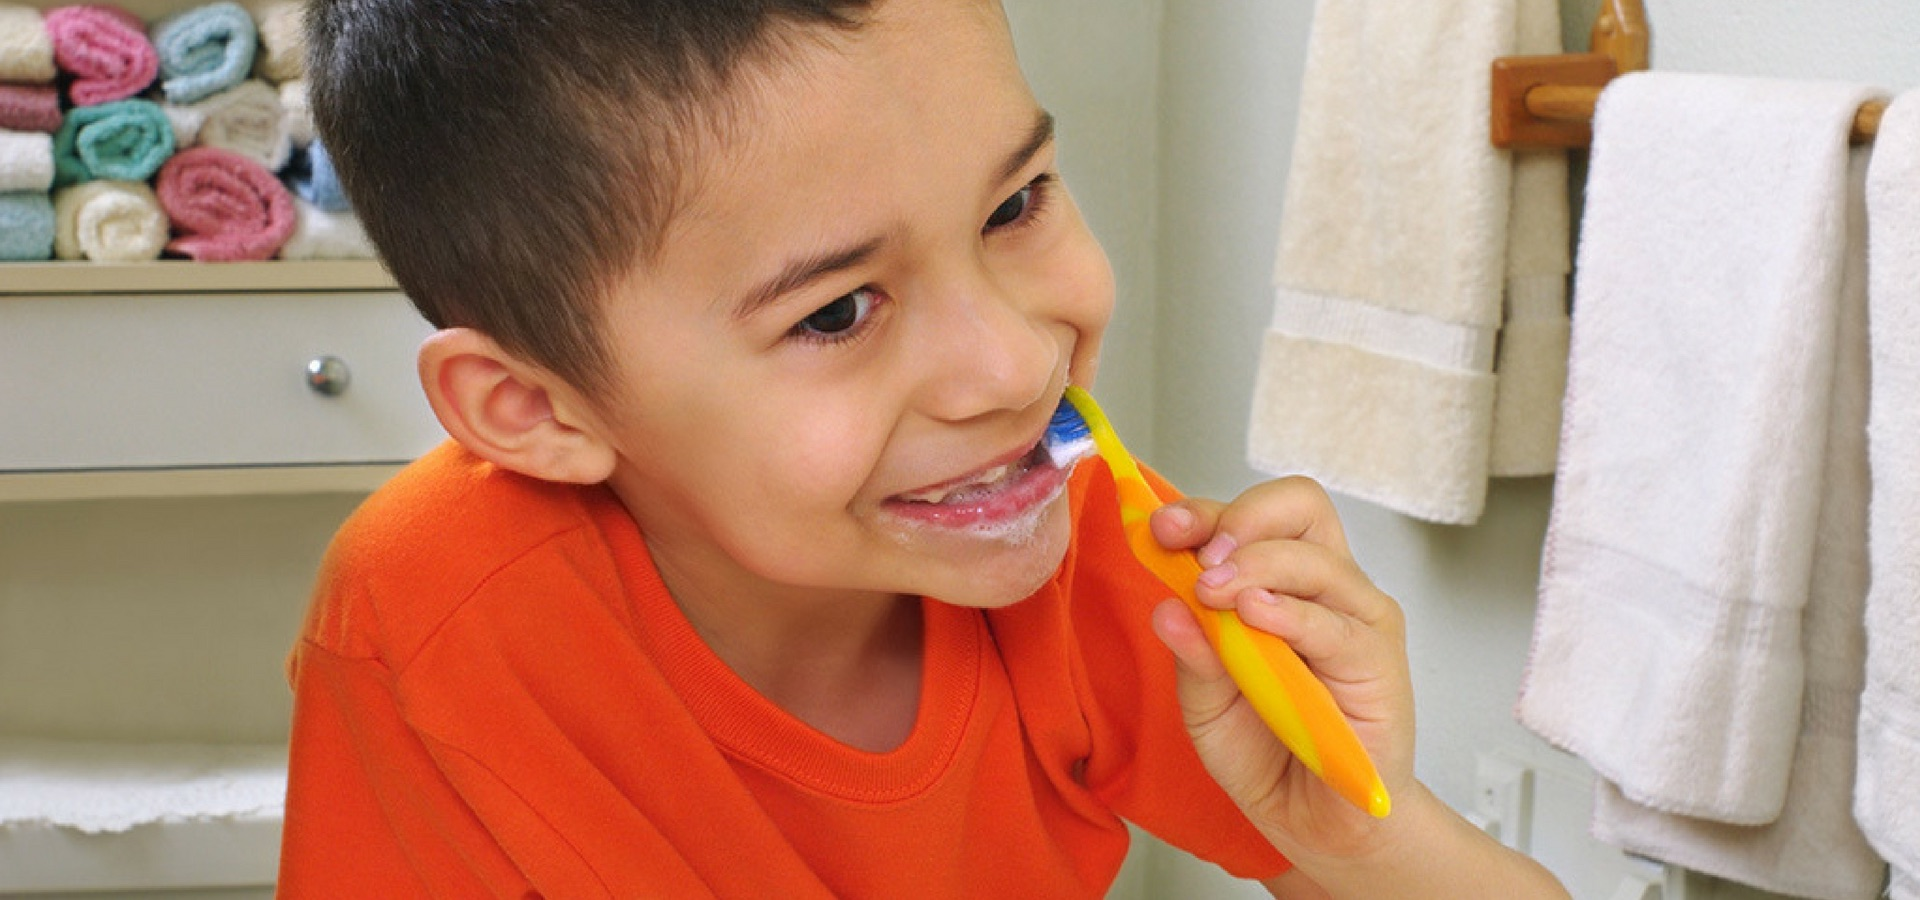 4 Important Personal Hygiene Habits To Teach Your Children